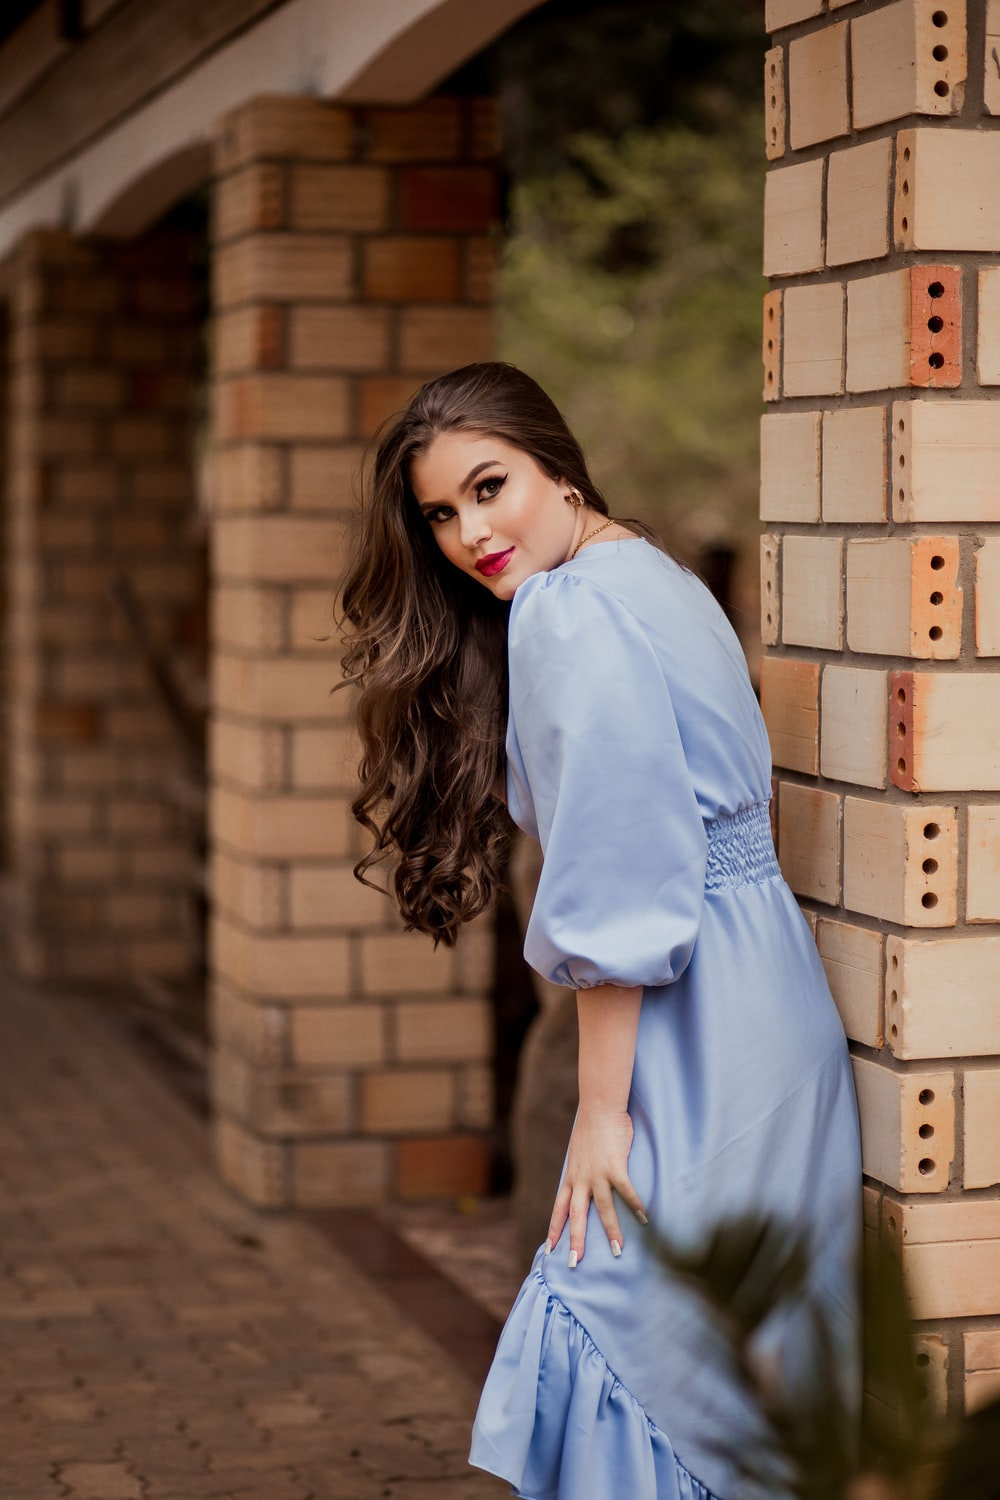 woman in blue dress standing beside brown brick wall during daytime